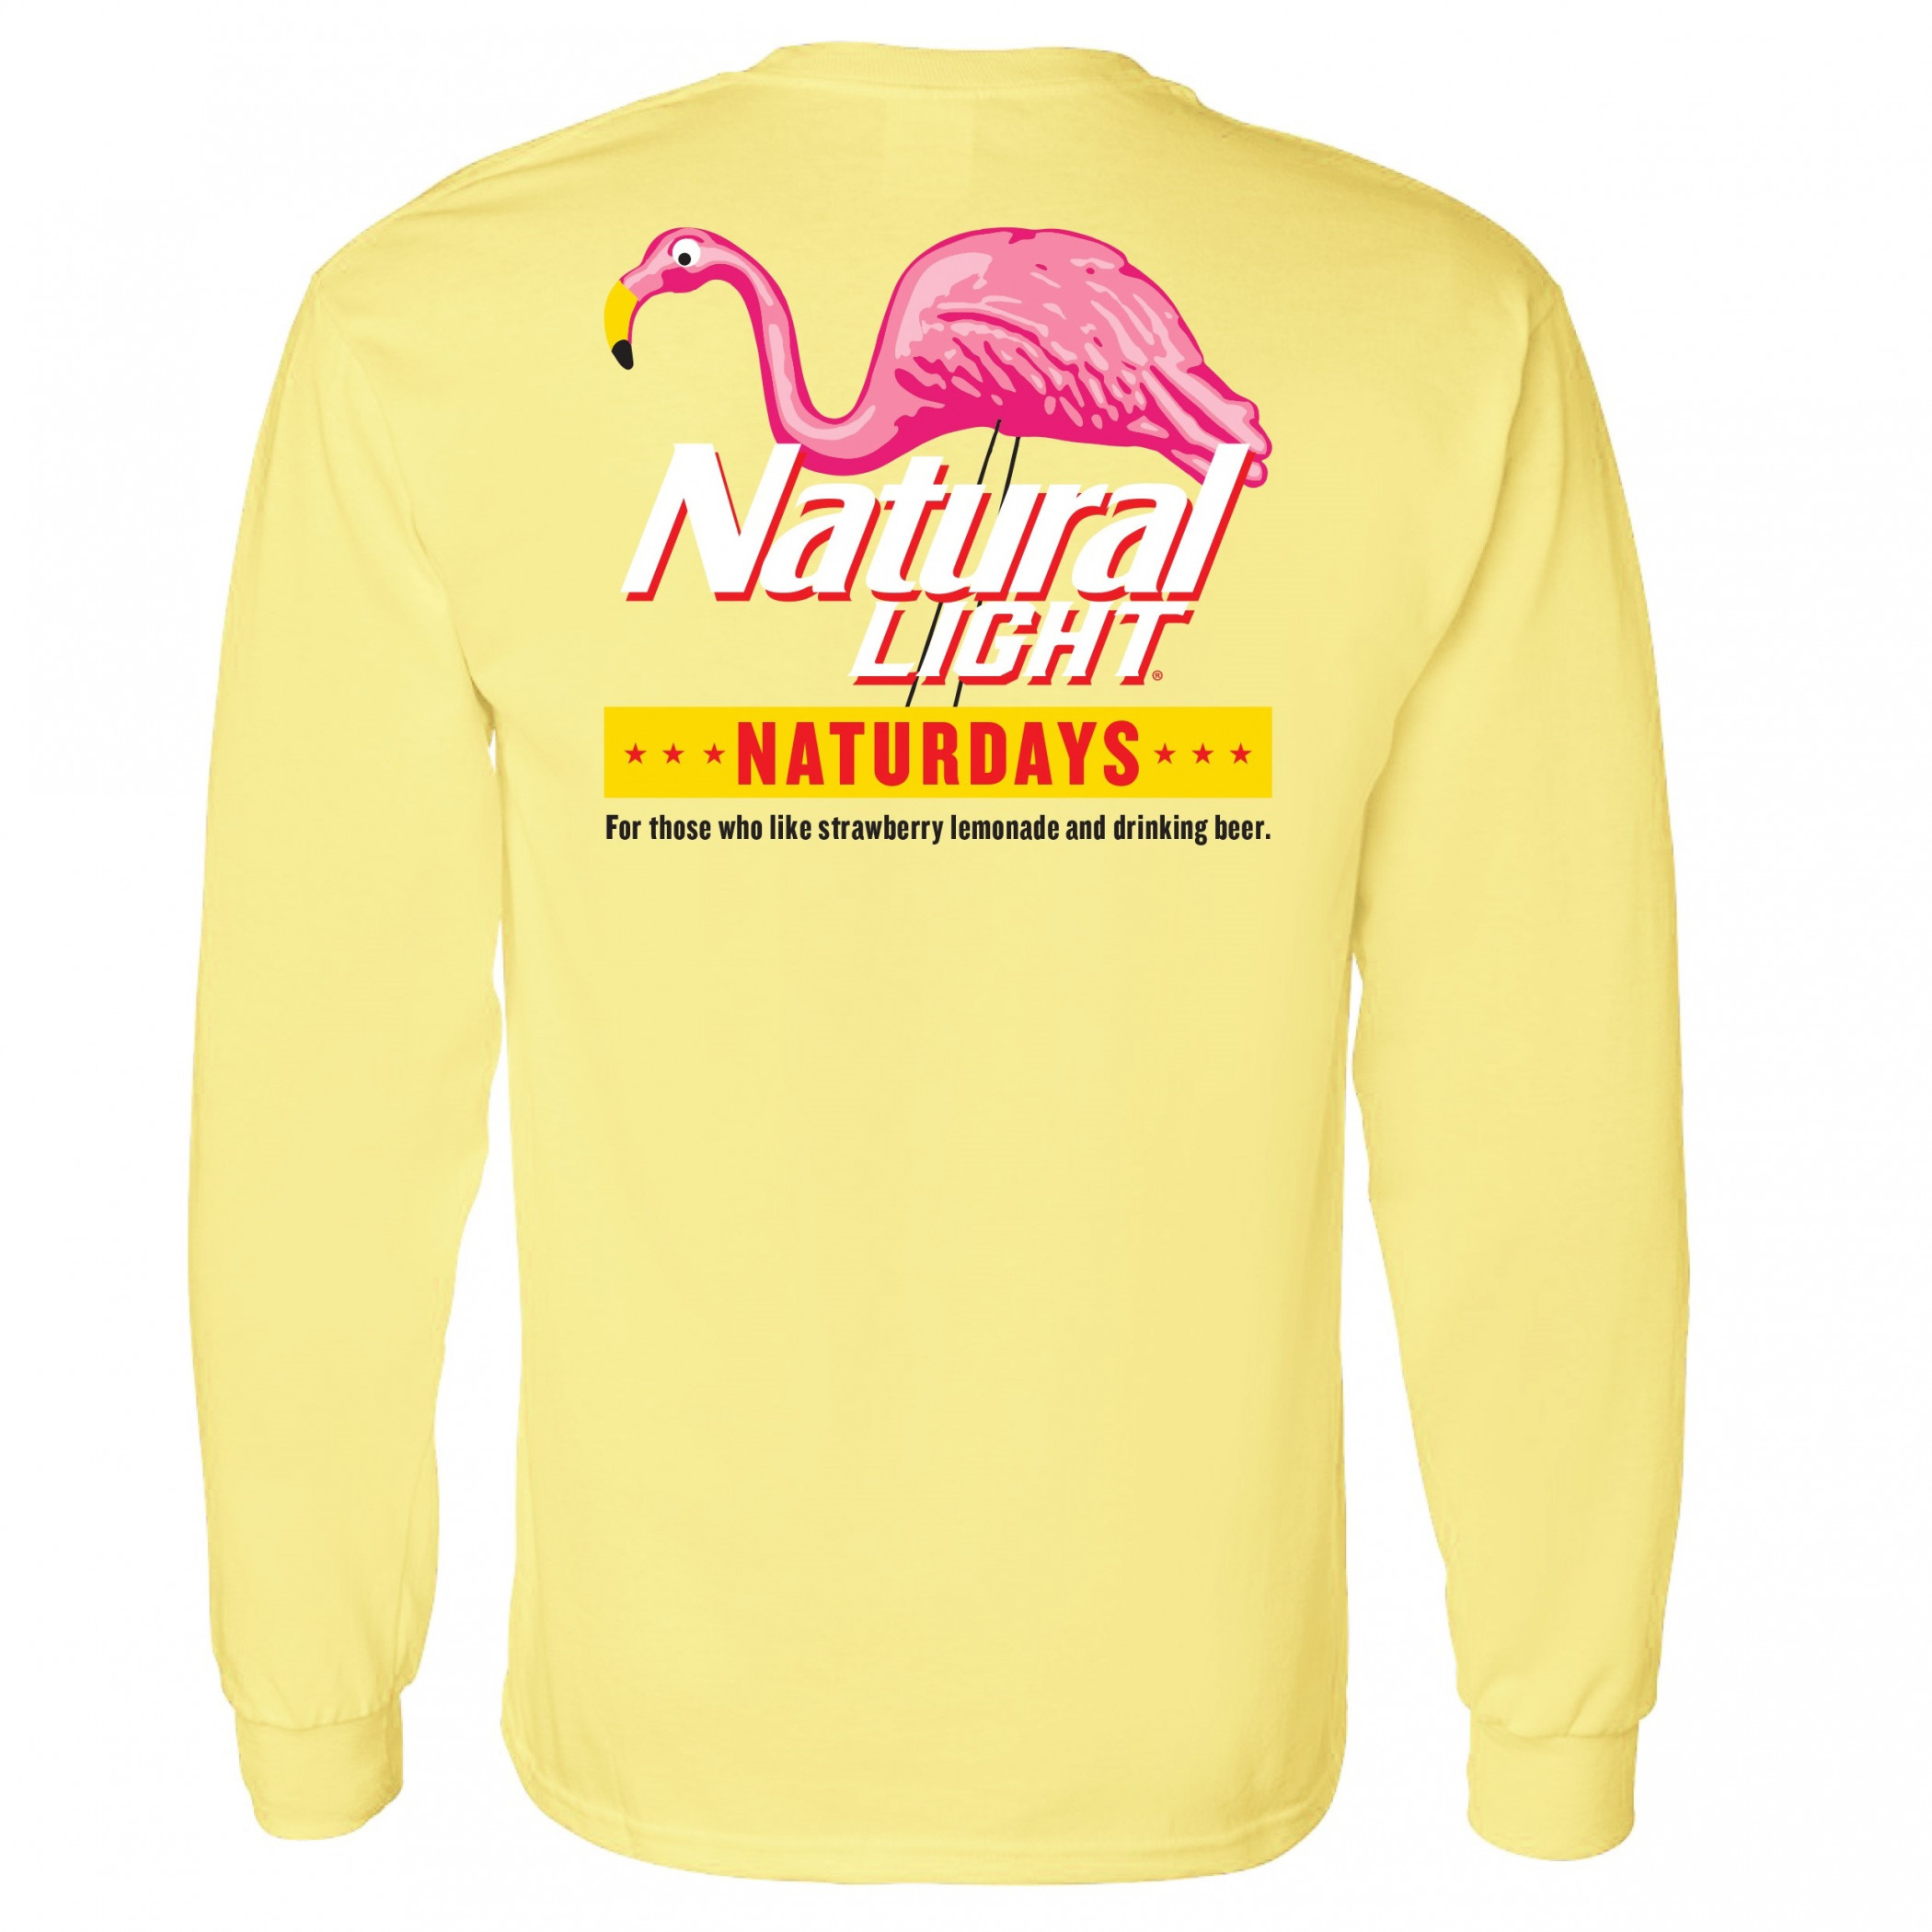 Natural Light Naturdays Flamingo Yellow Long Sleeve Shirt